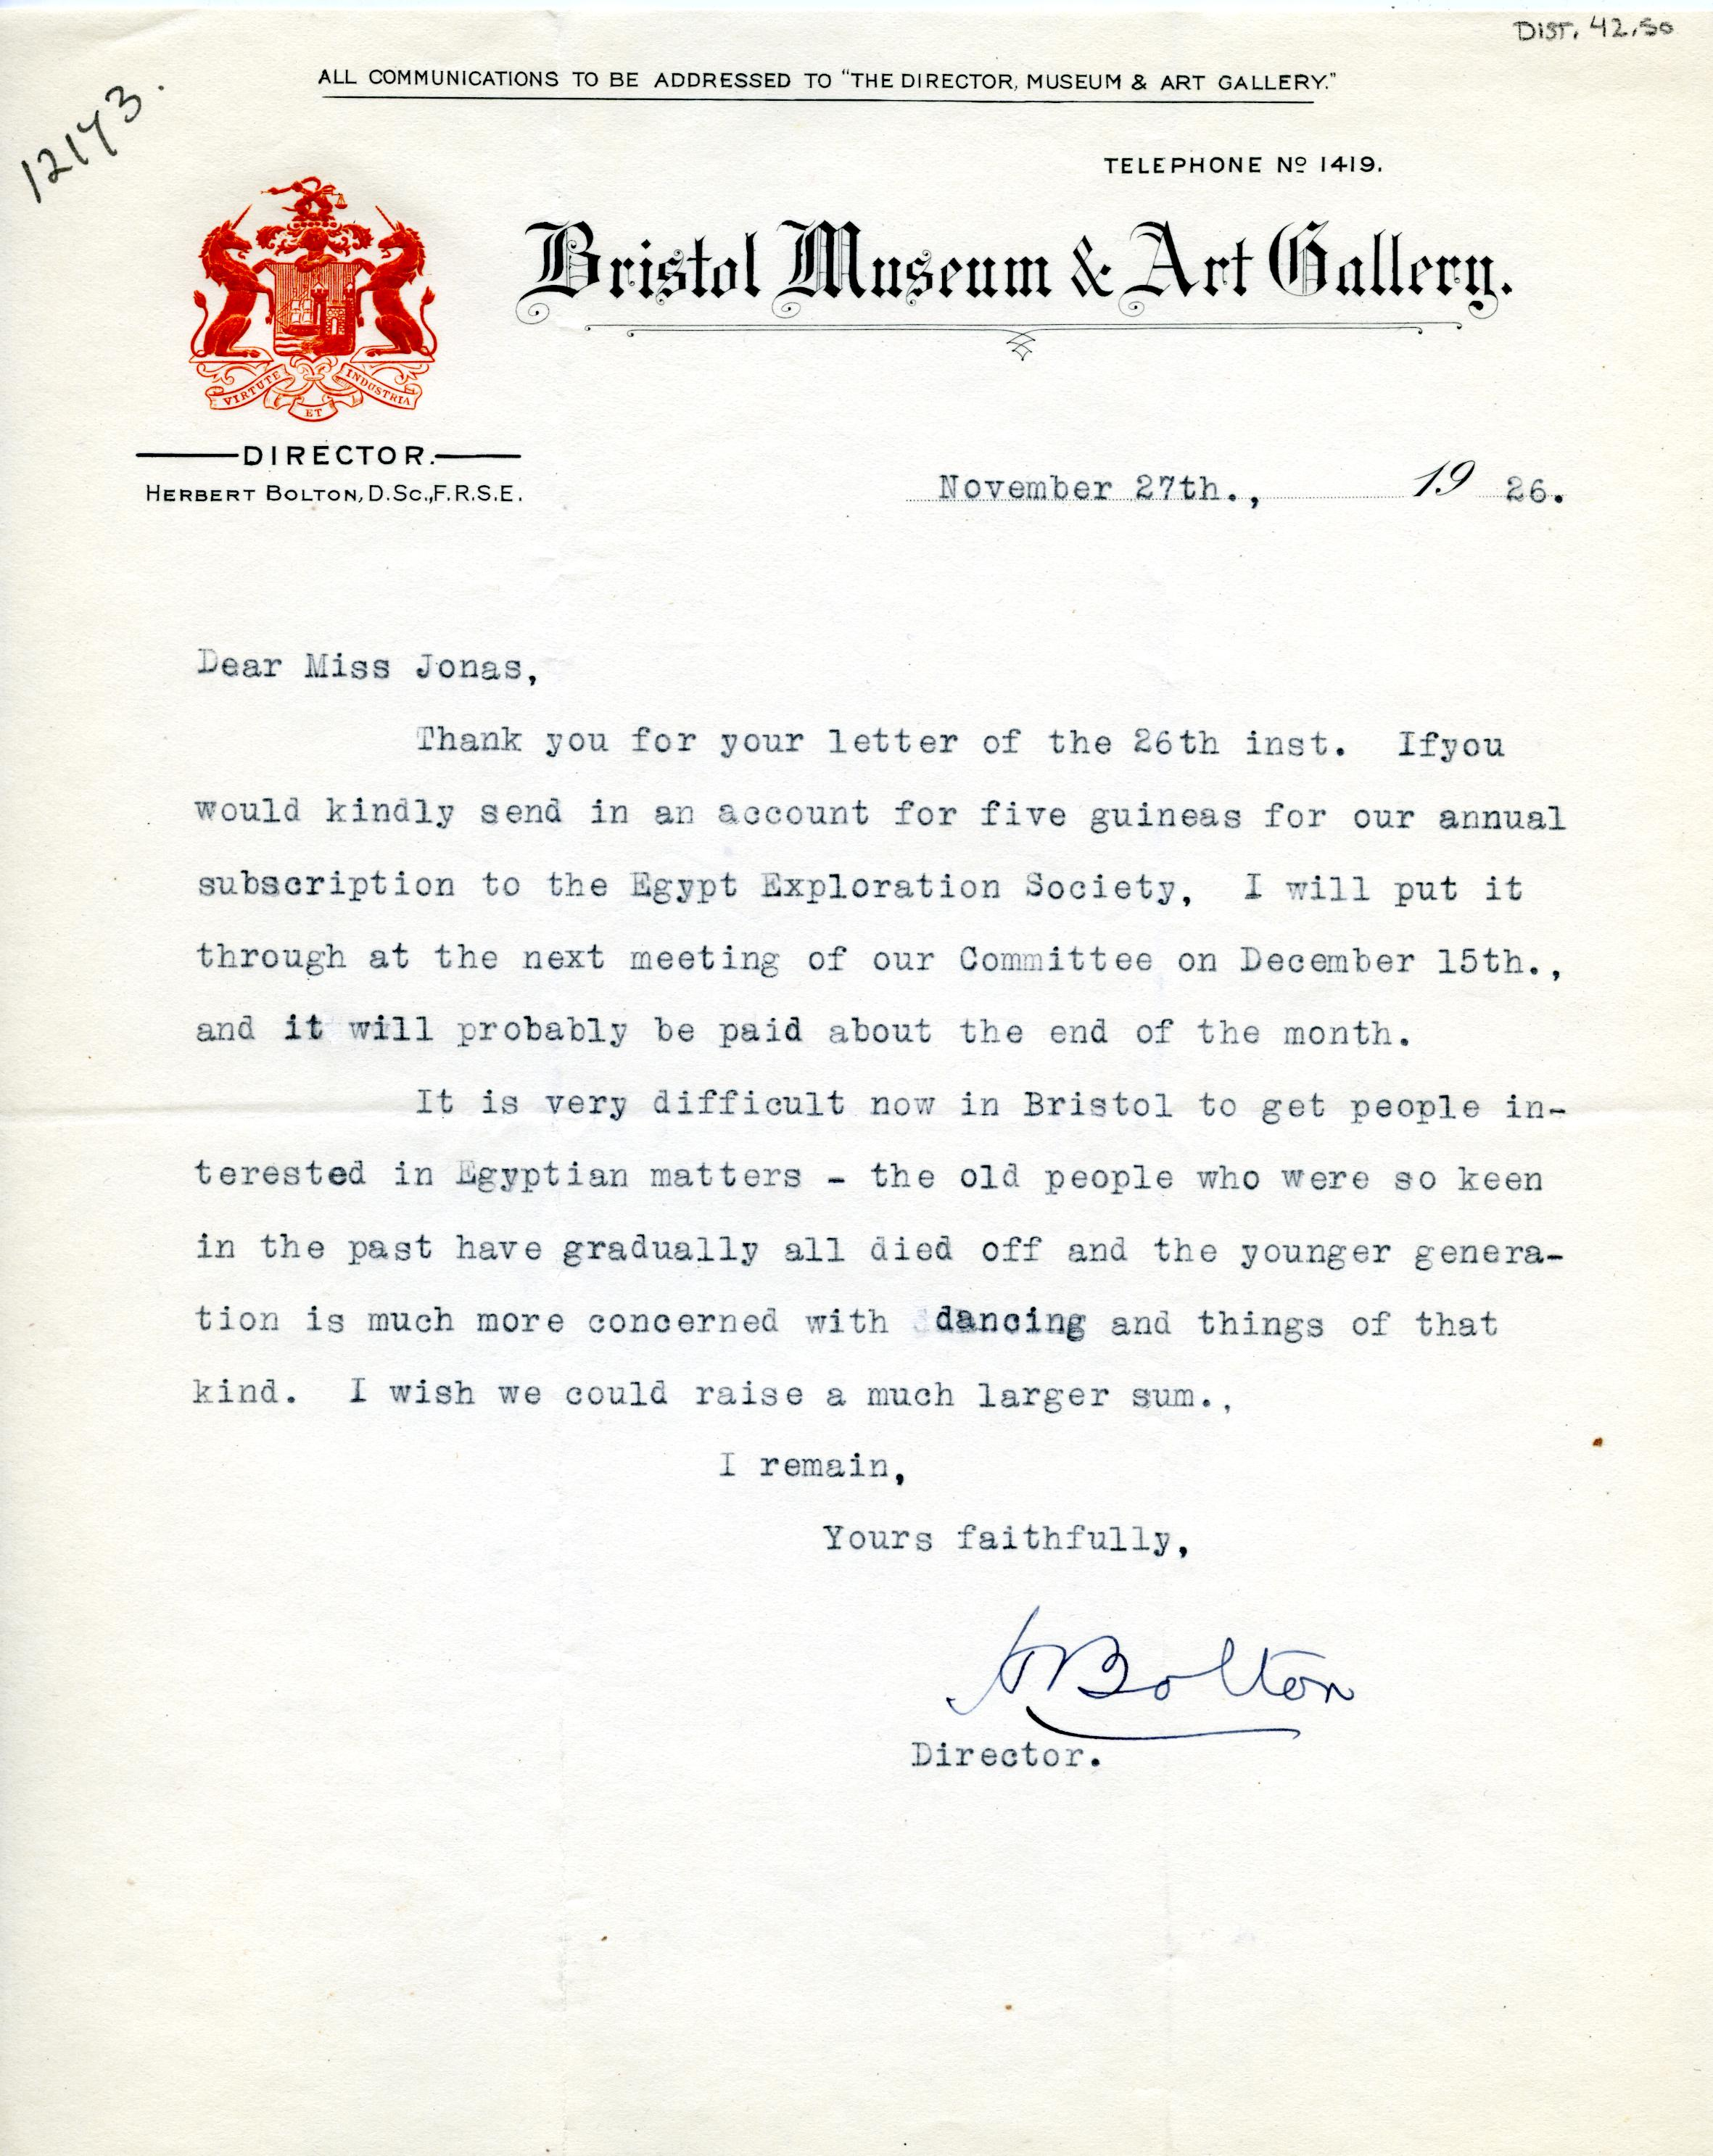 1922-71 Miscellaneous correspondence with museums DIST.42.50